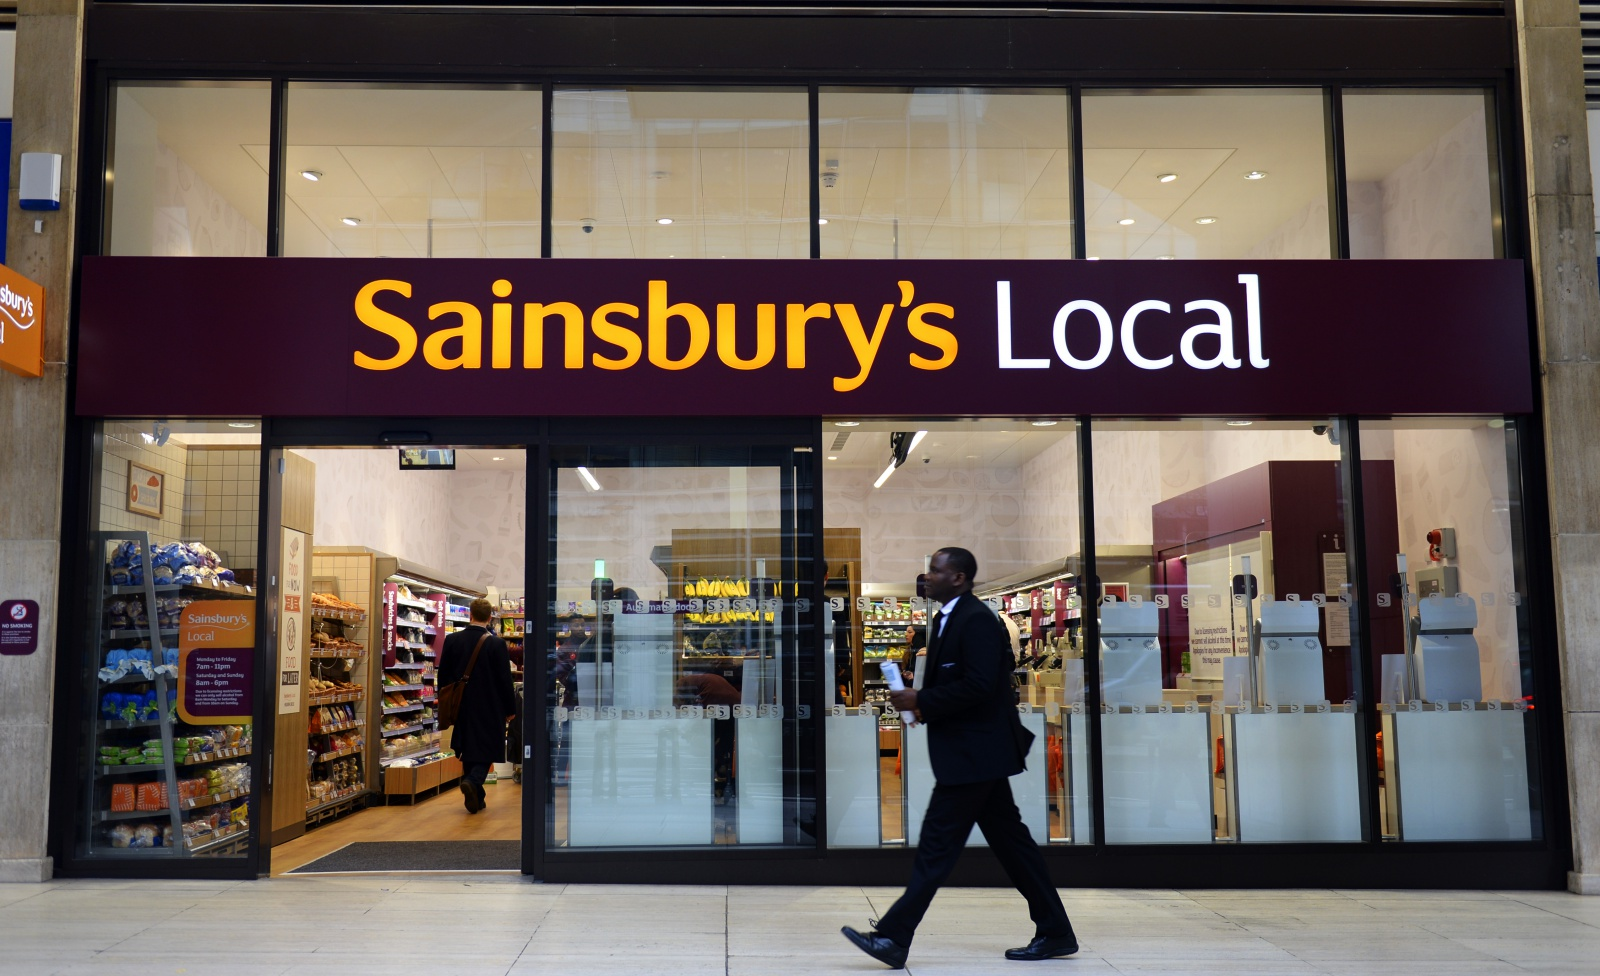 sainsbury s the uk s largest retailers Sainsbury's today opened its largest supermarket in northern ireland and one of the biggest newly built stores it has opened anywhere in the uk in the past decade.